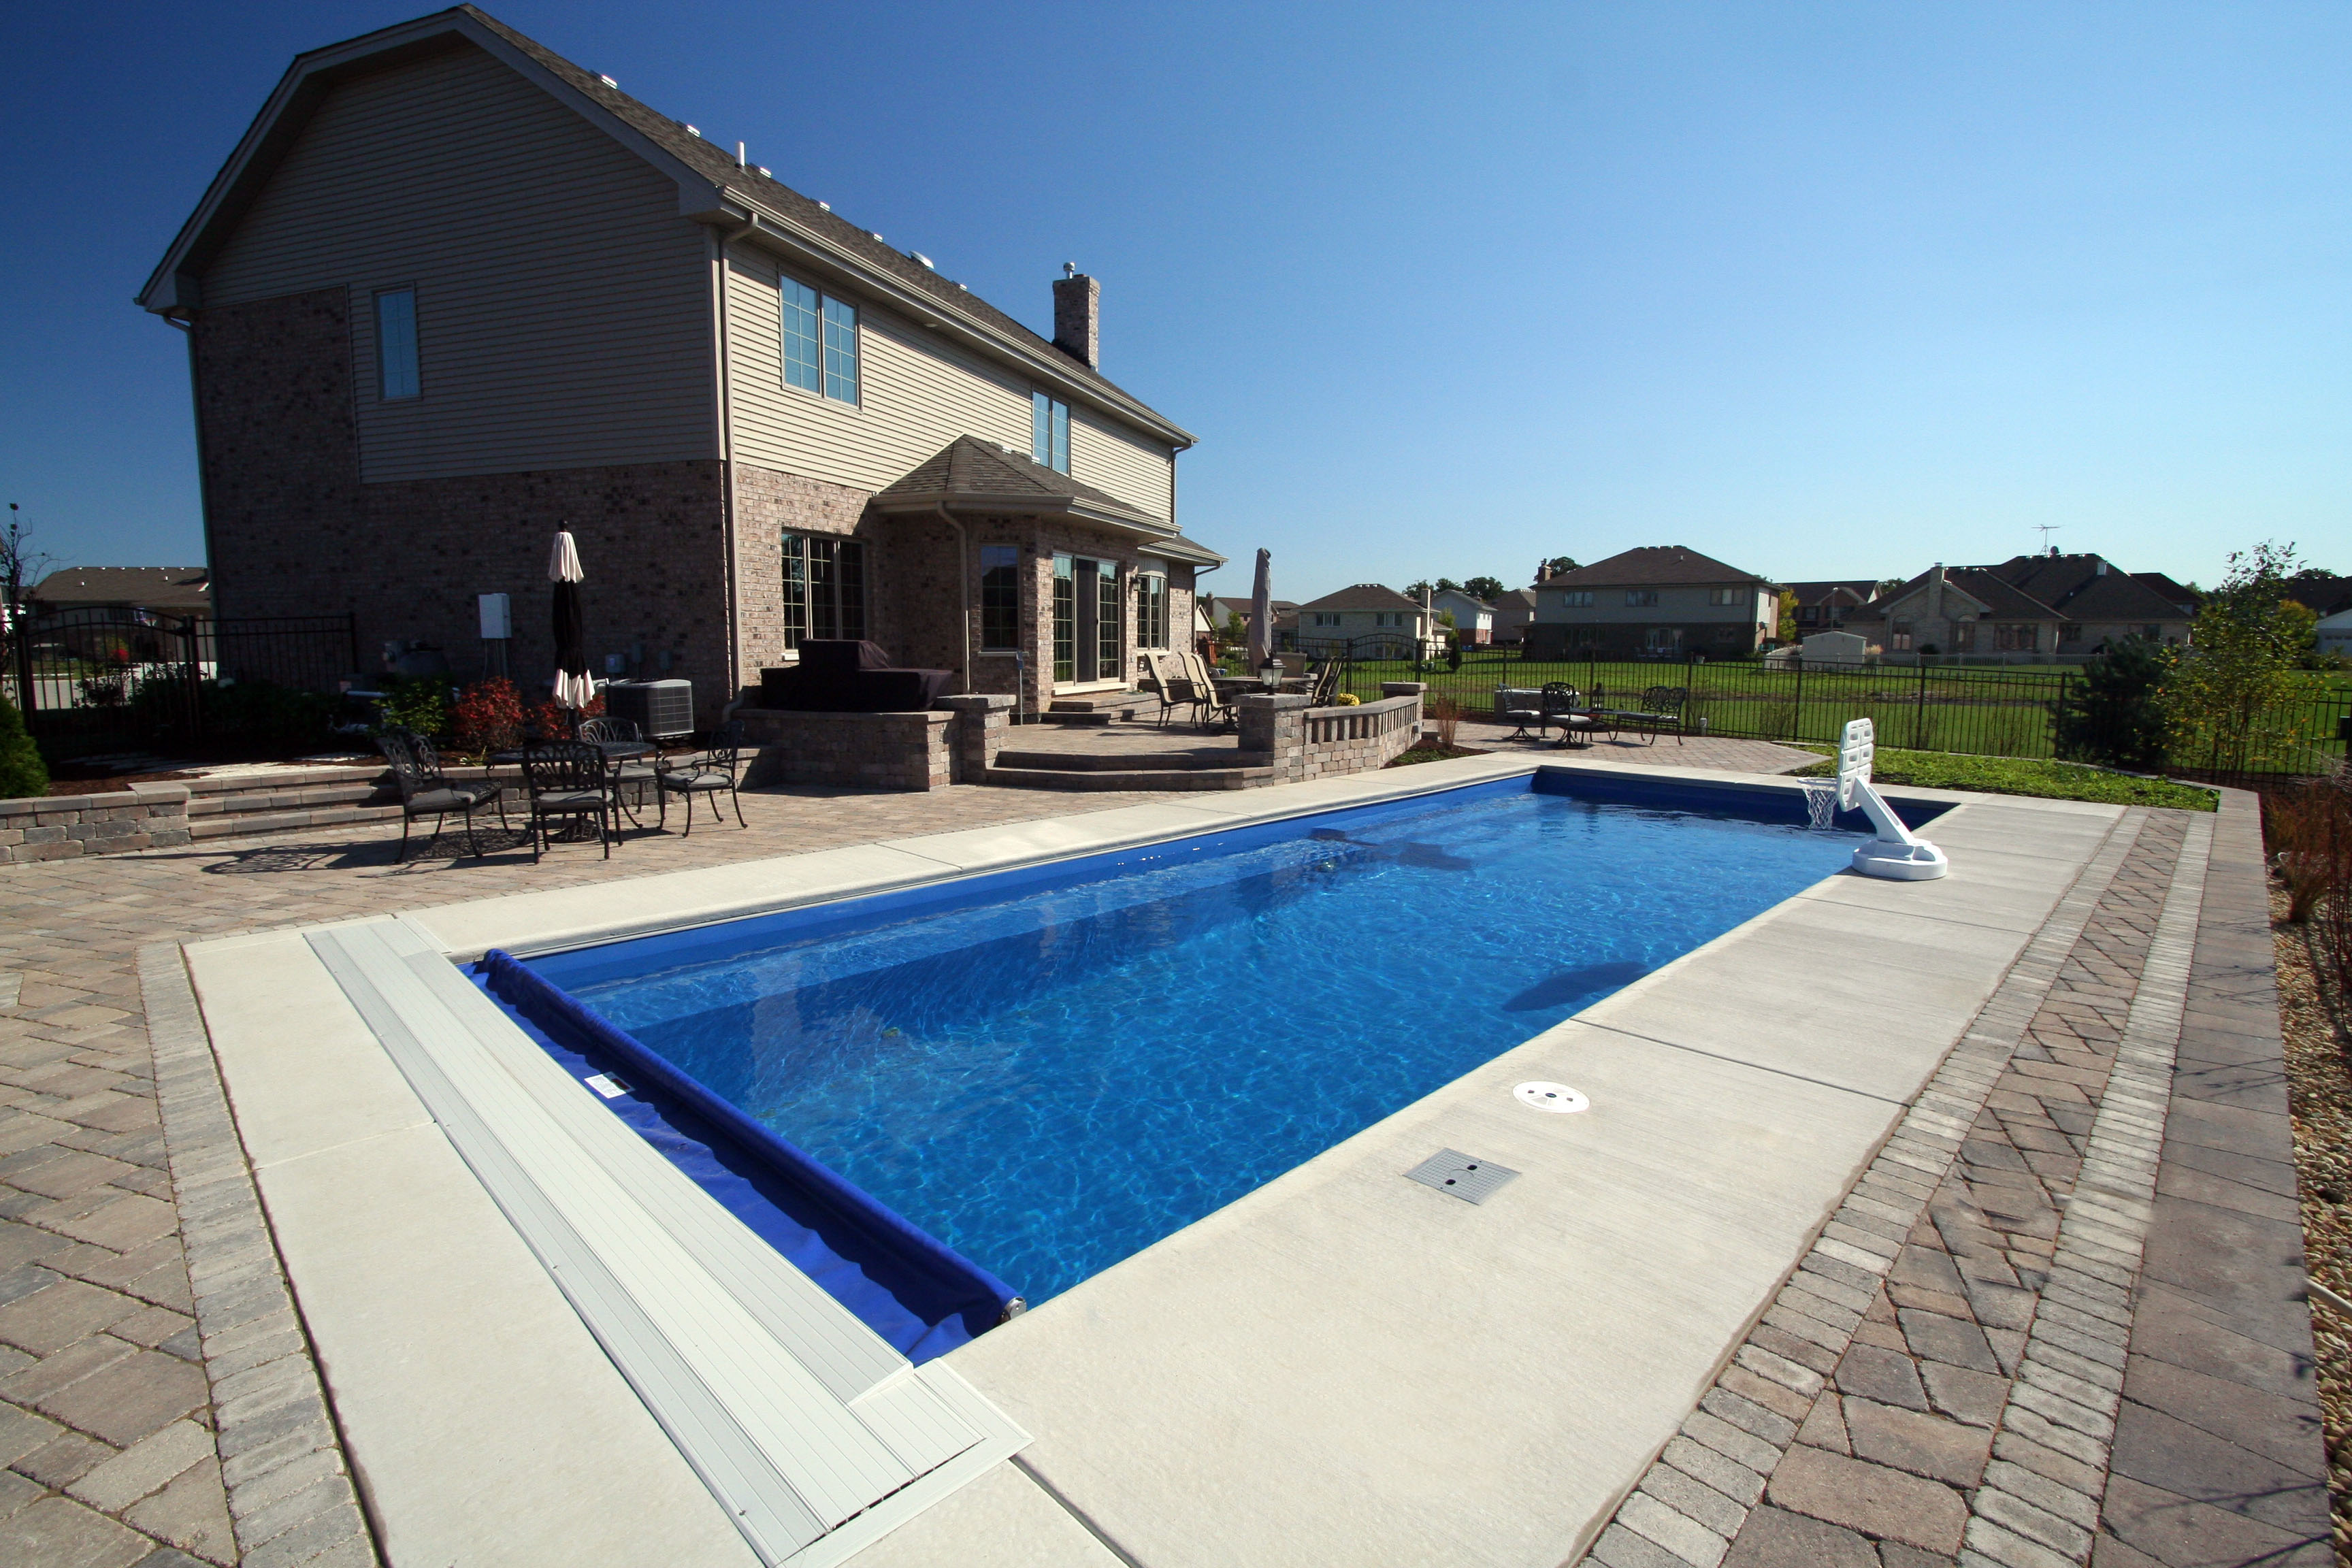 Swimming Pool testimonials reviews and reference letters